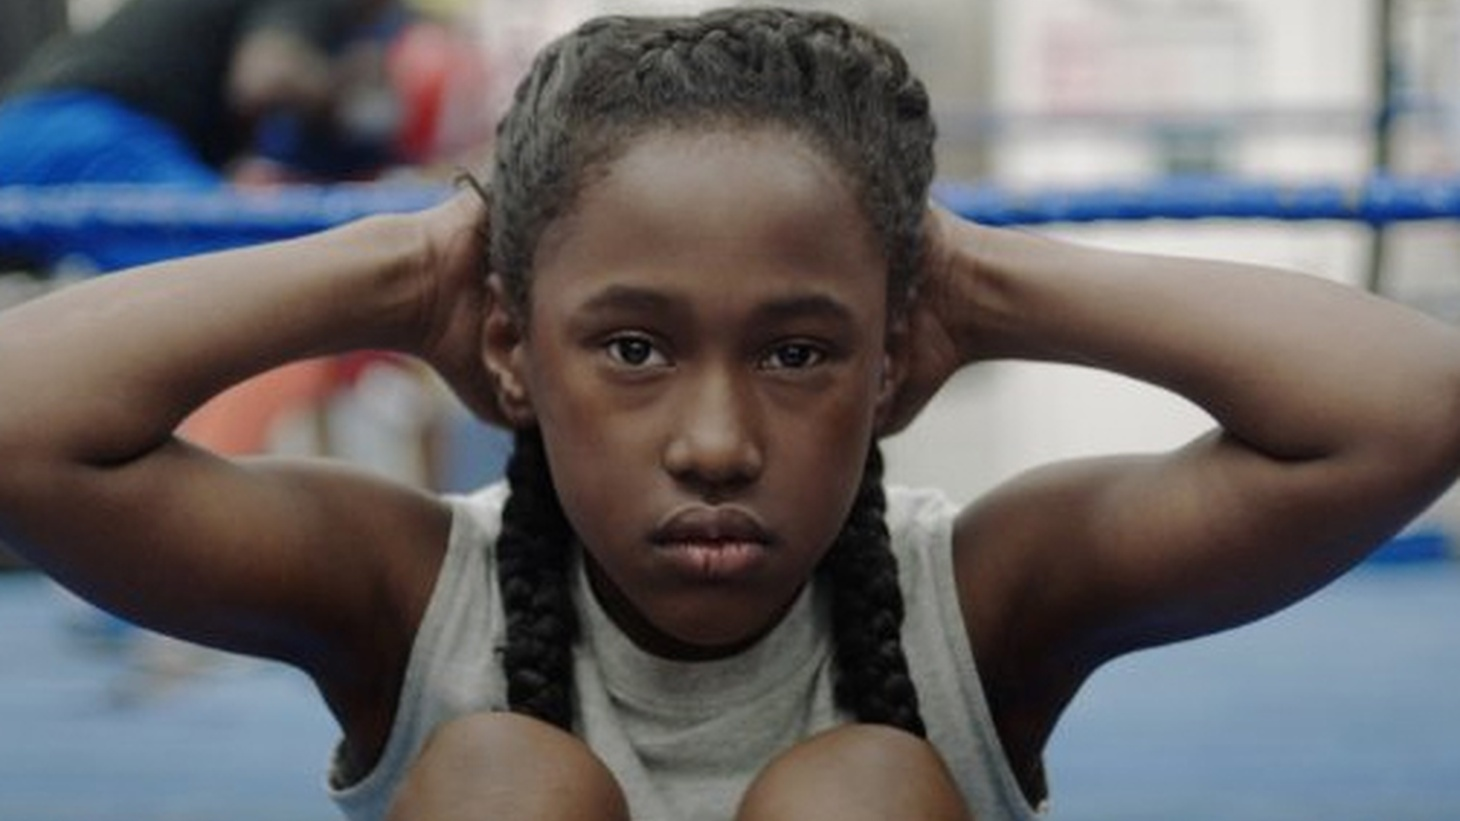 A wonderful little movie, The Fits opens on an 11-year old doing sit-ups -- 25 in all, hands clasped behind her head, radiant face to the camera.